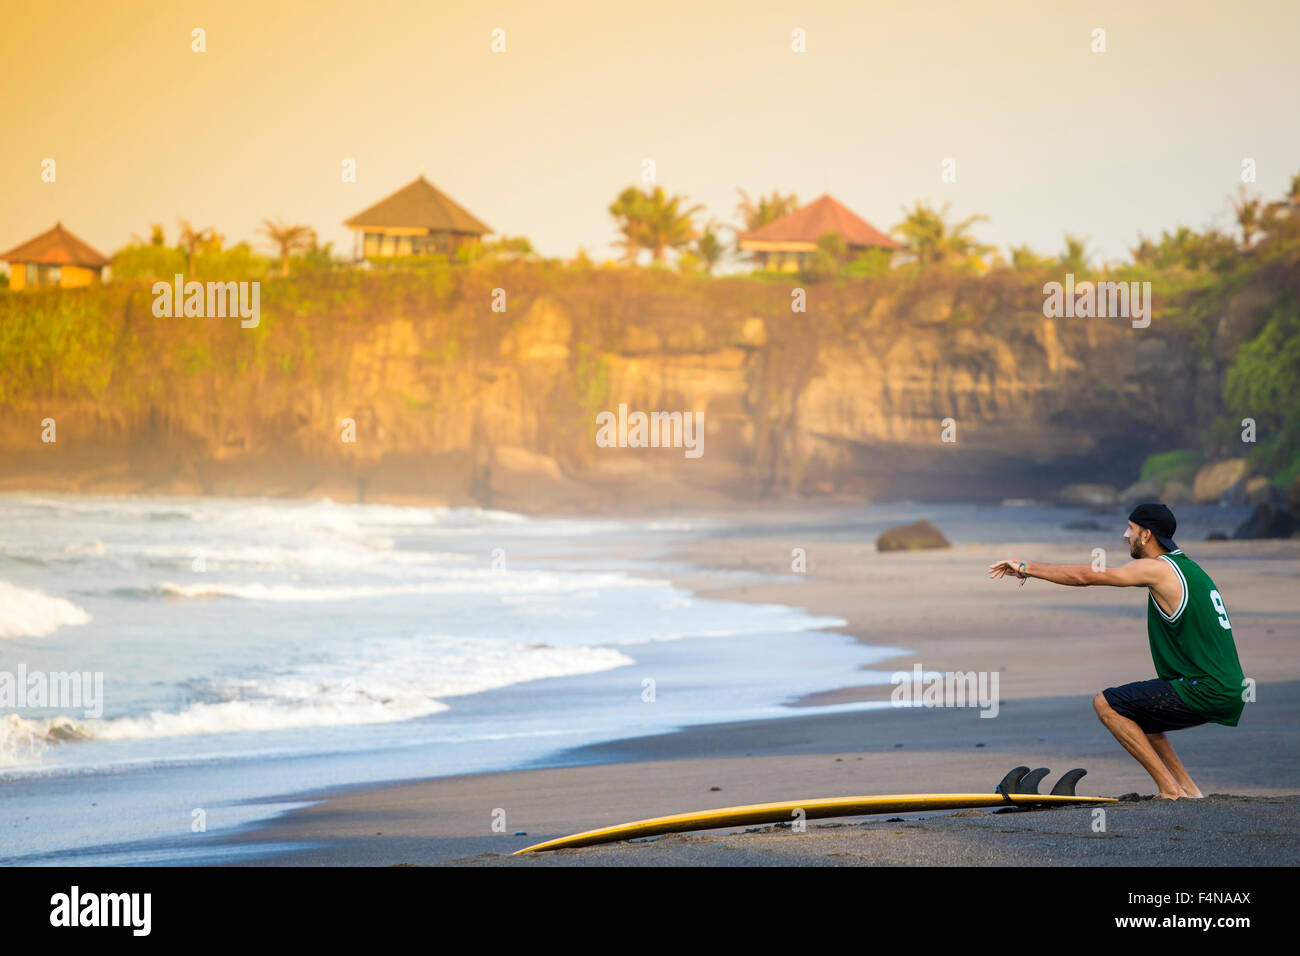 Indonesia, Bali, surfer on the beach doing a knee bend - Stock Image